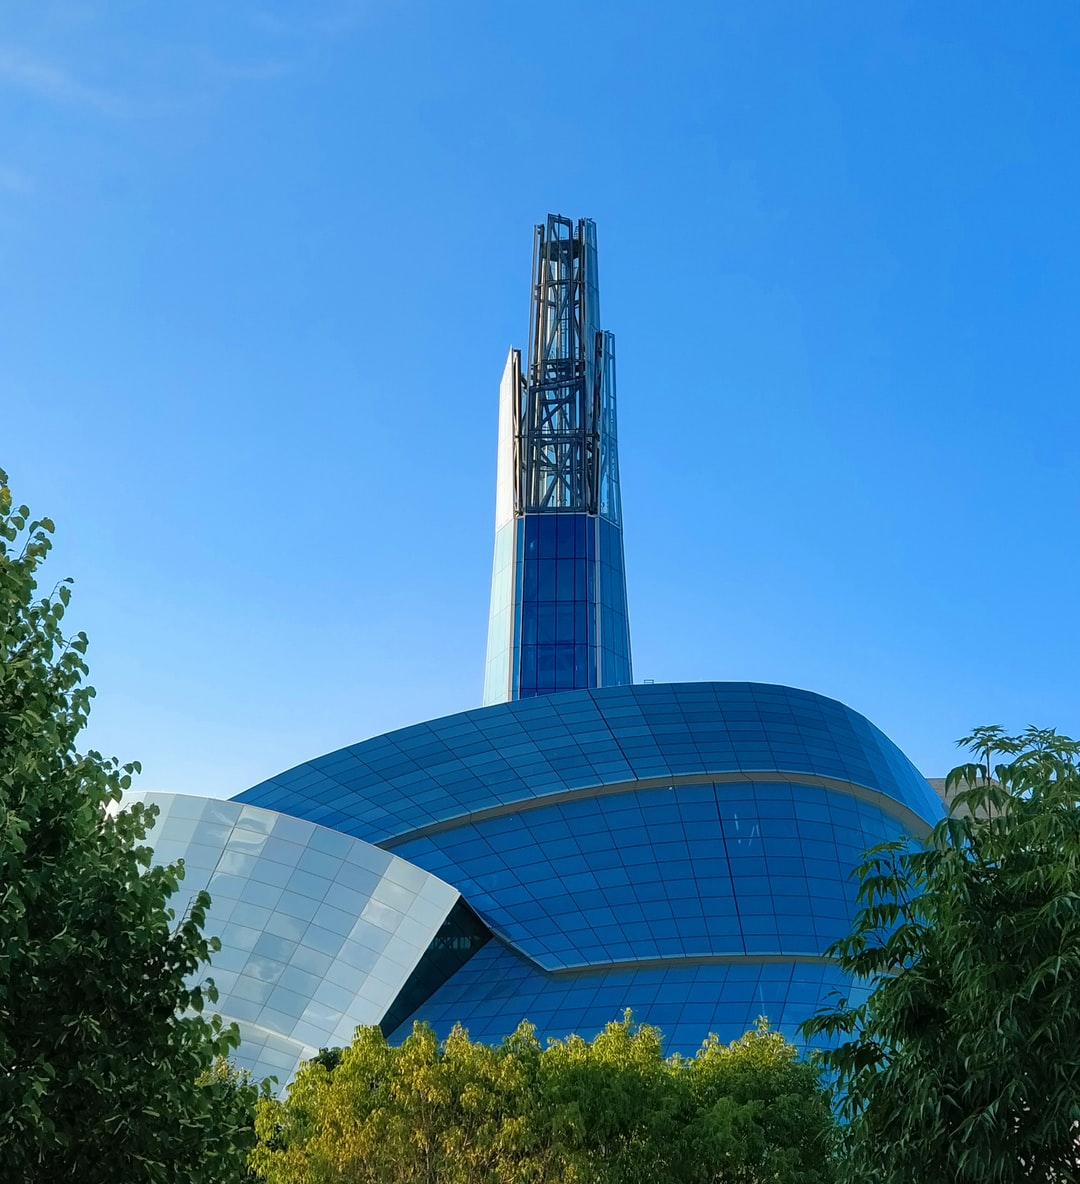 The beautiful Museum of Human Rights in Winnipeg, Canada.